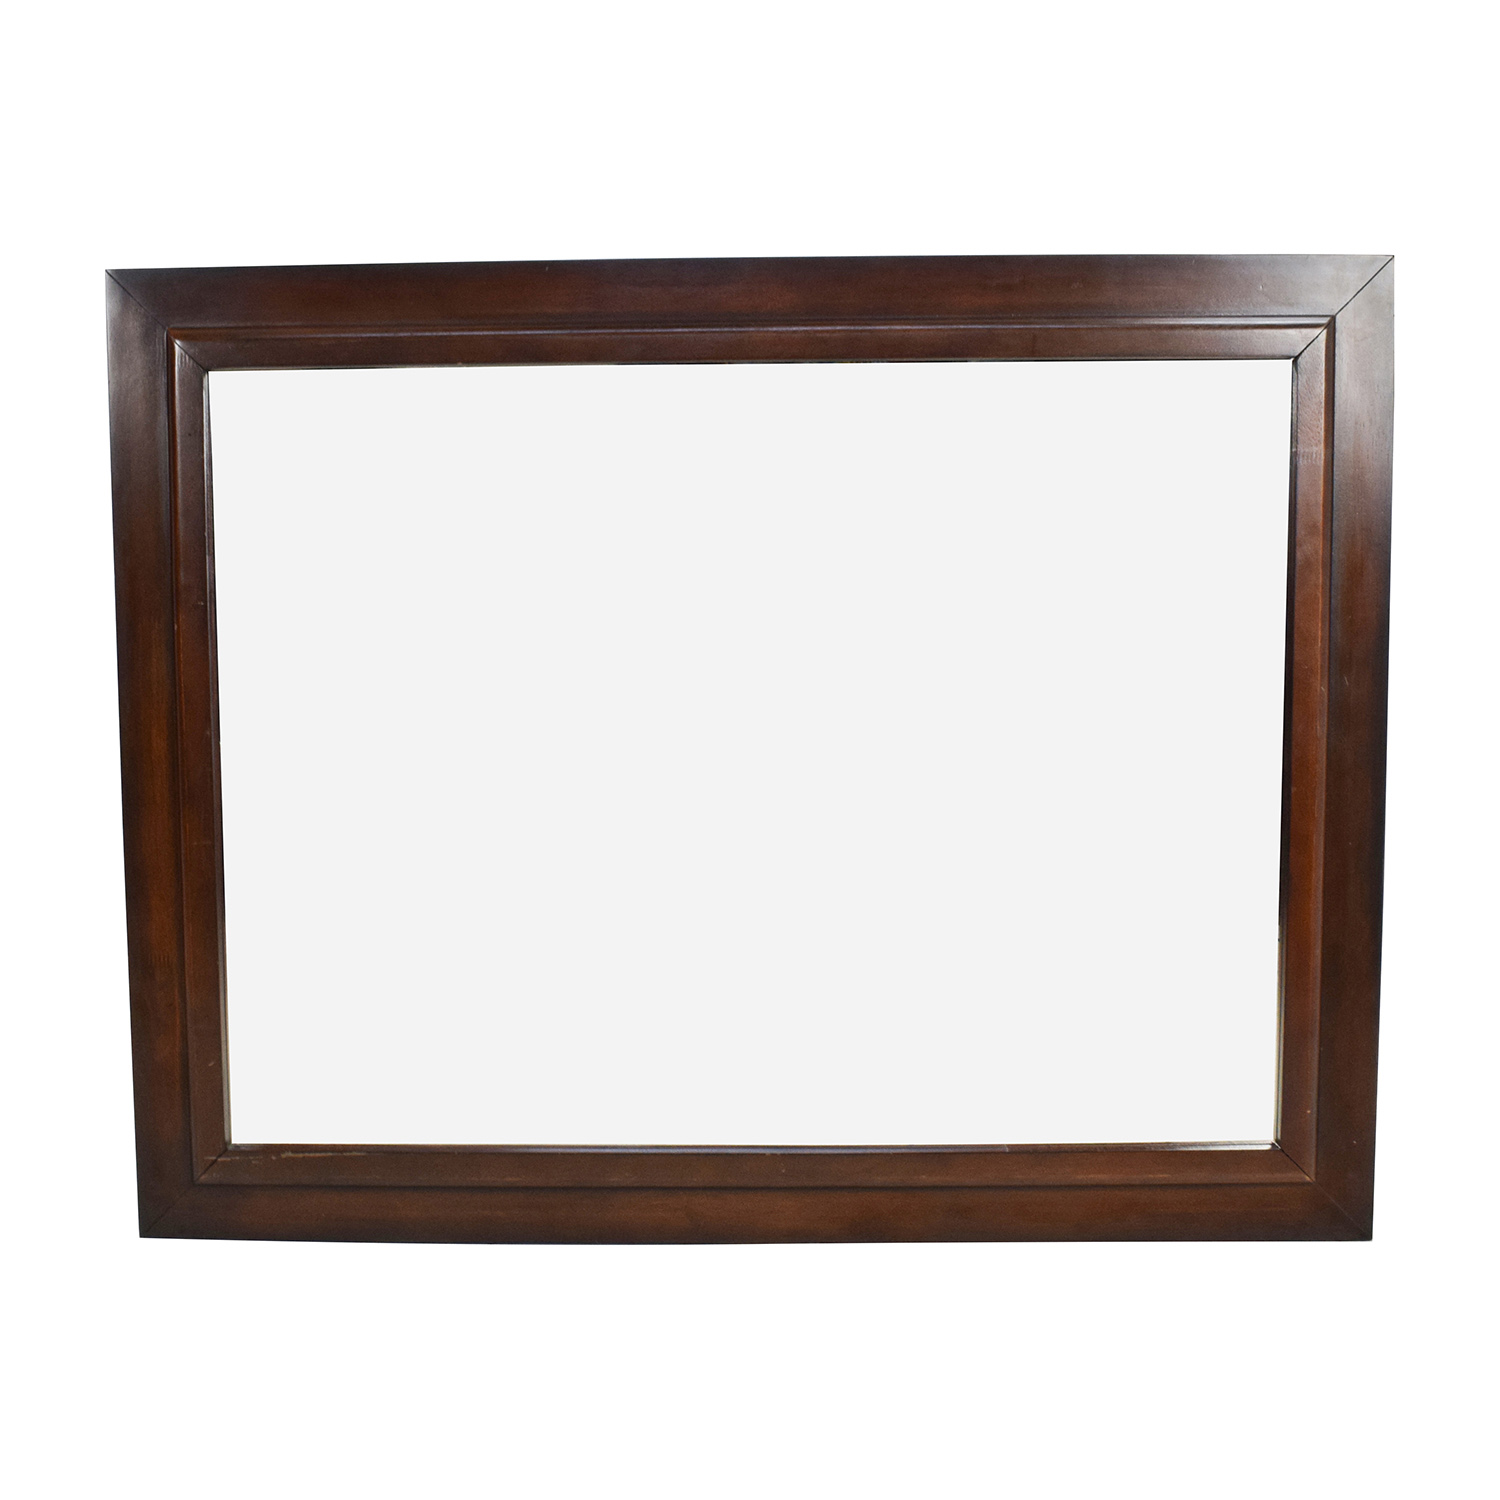 Wooden framed decorative wall mirror 80 off large square Large mirror on wall